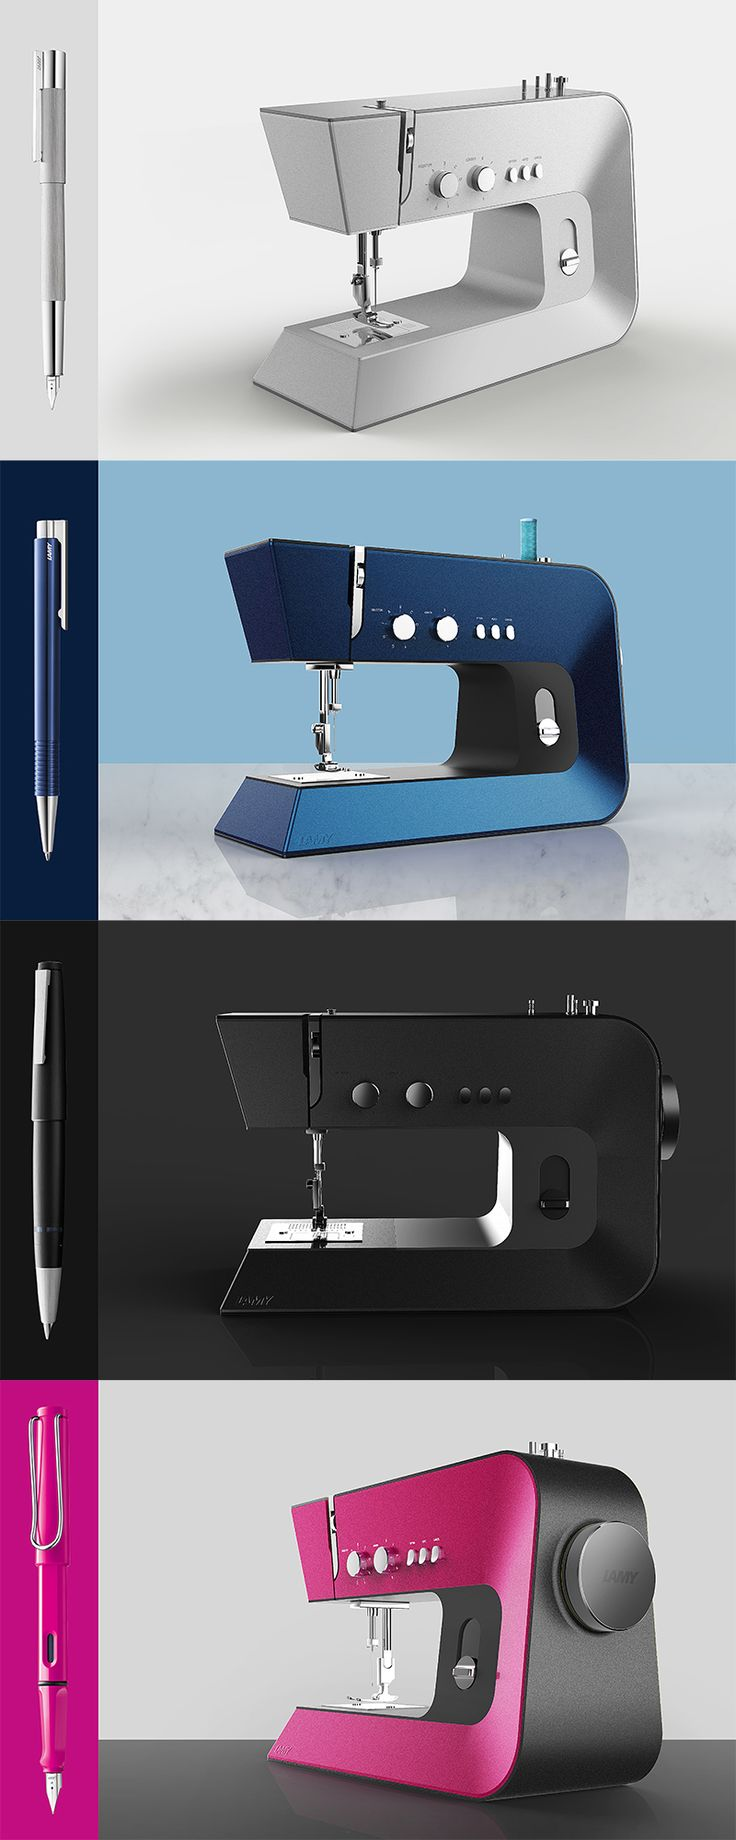 Product design / Industrial design / 제품디자인 / 산업디자인 / sewing machine / 미싱기